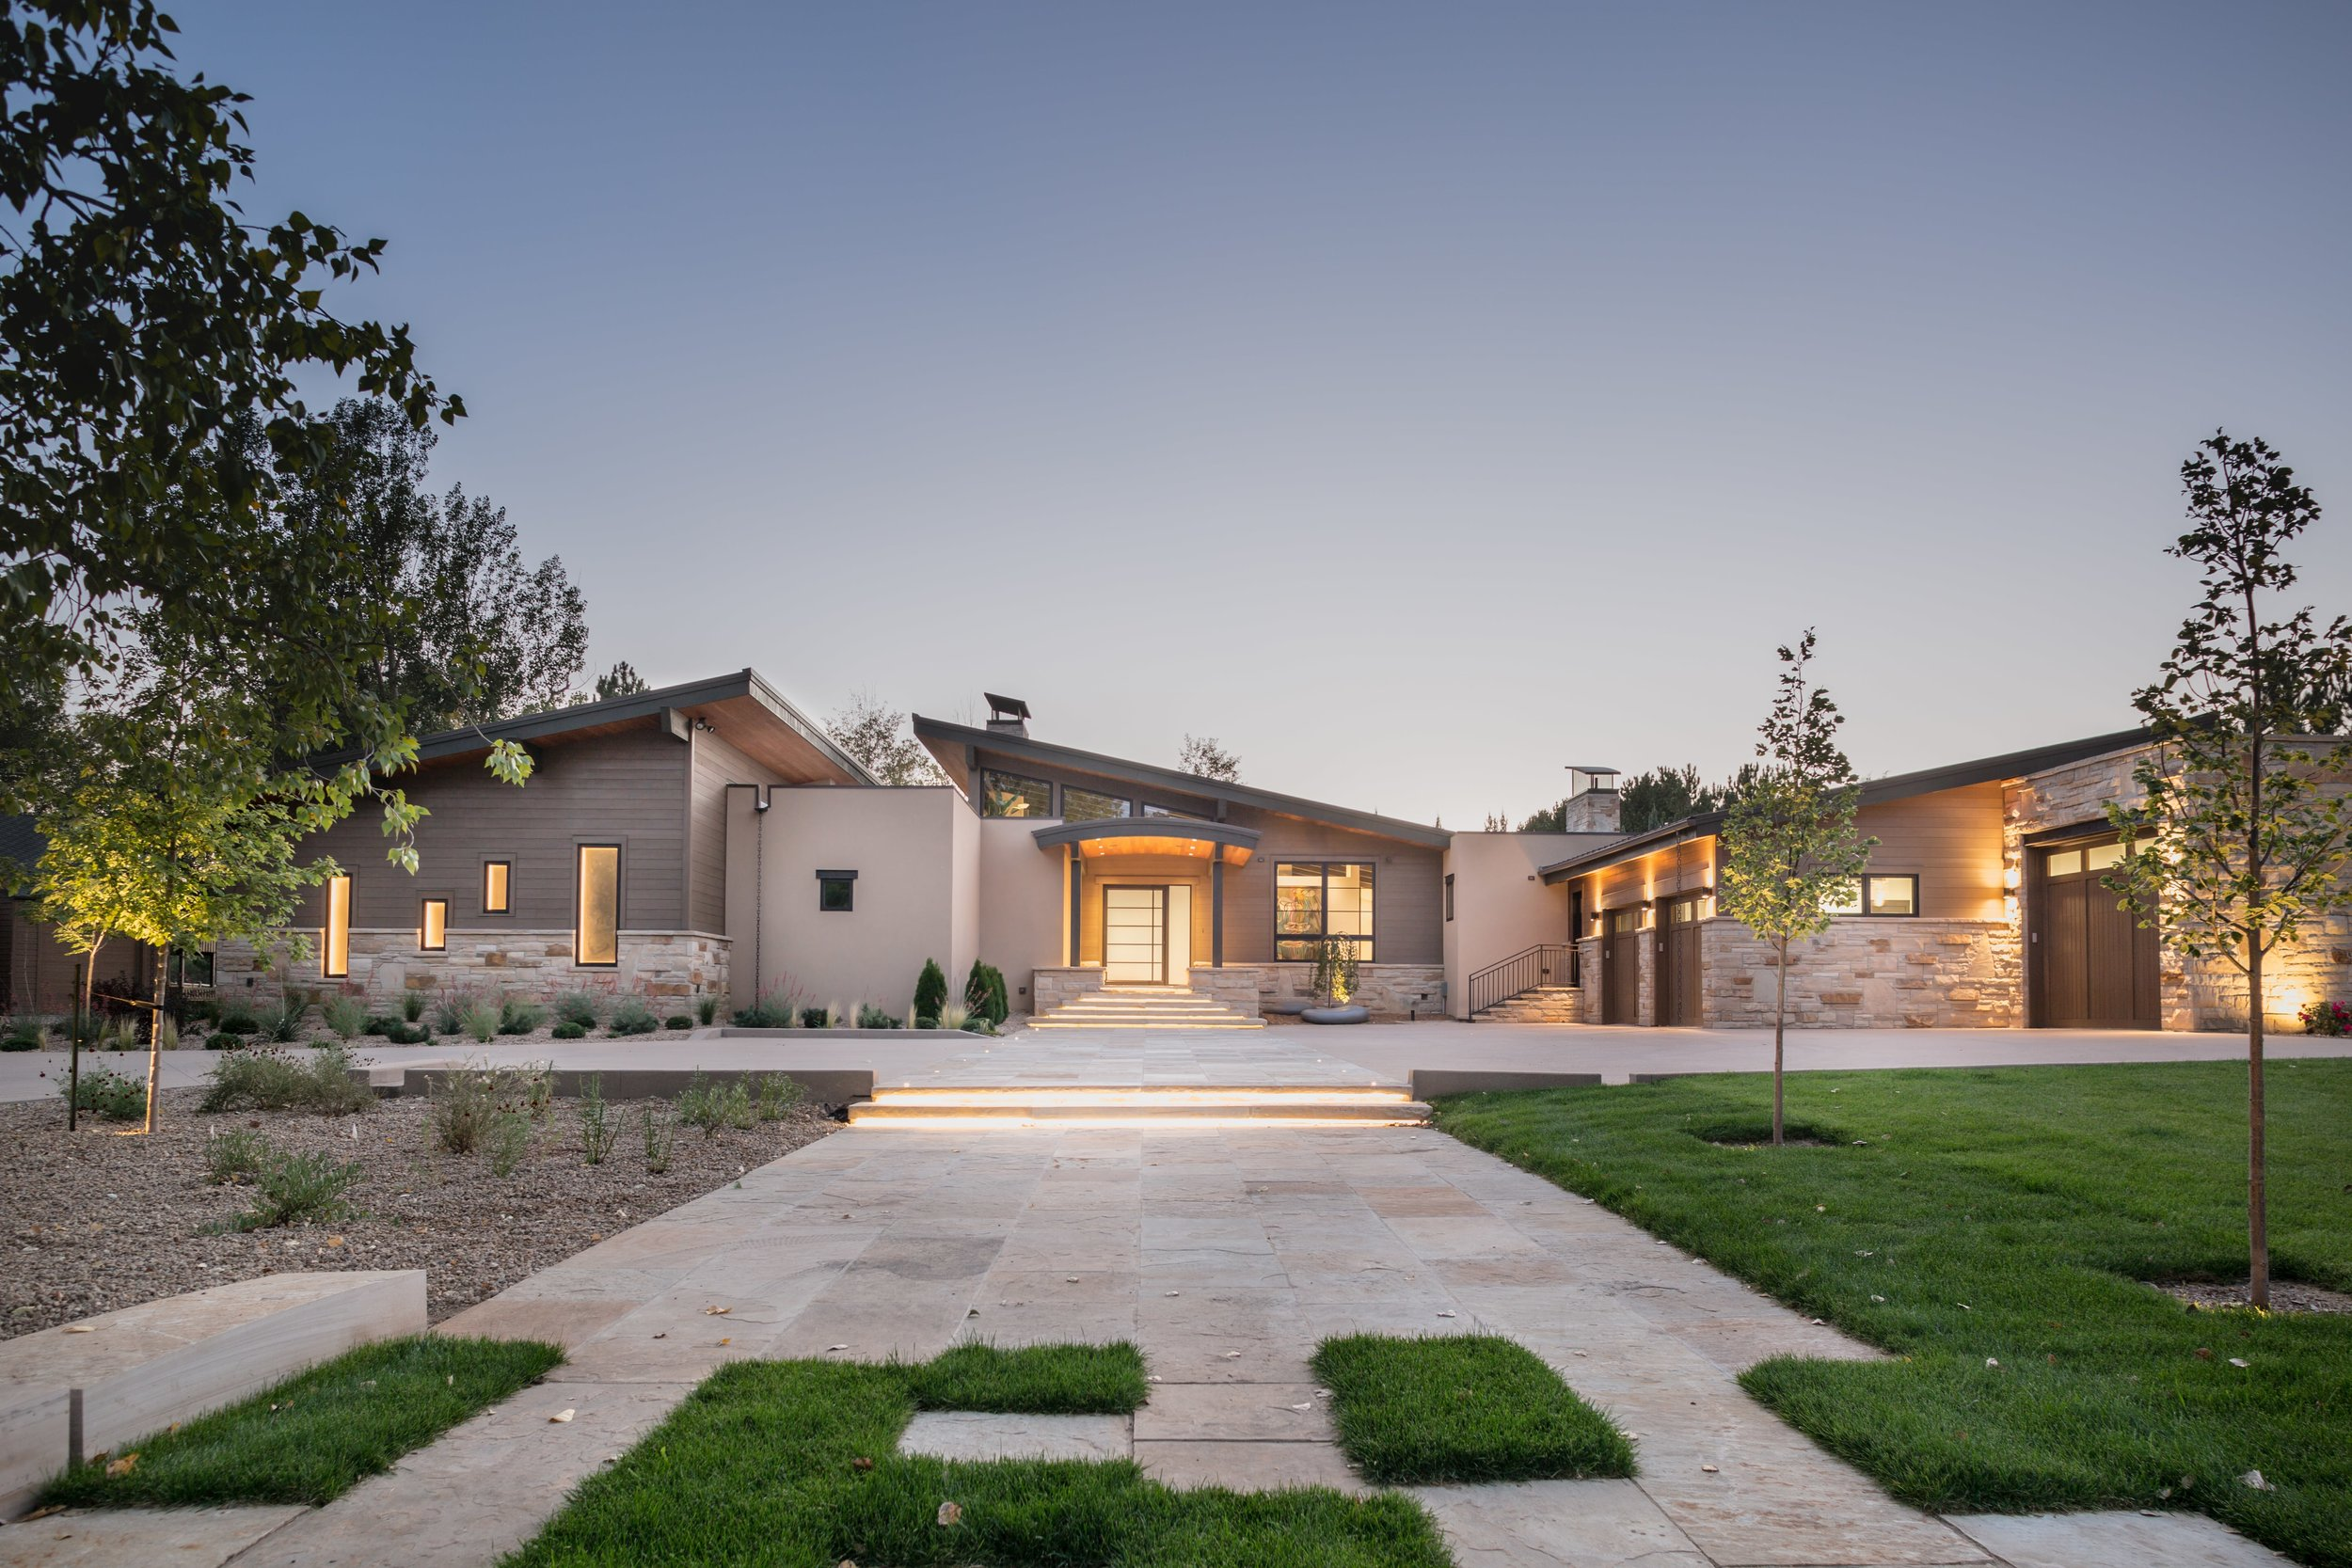 Architectural Photography Of Treeline Crest Residence Taken By The Harper  Point Architectural Photographers